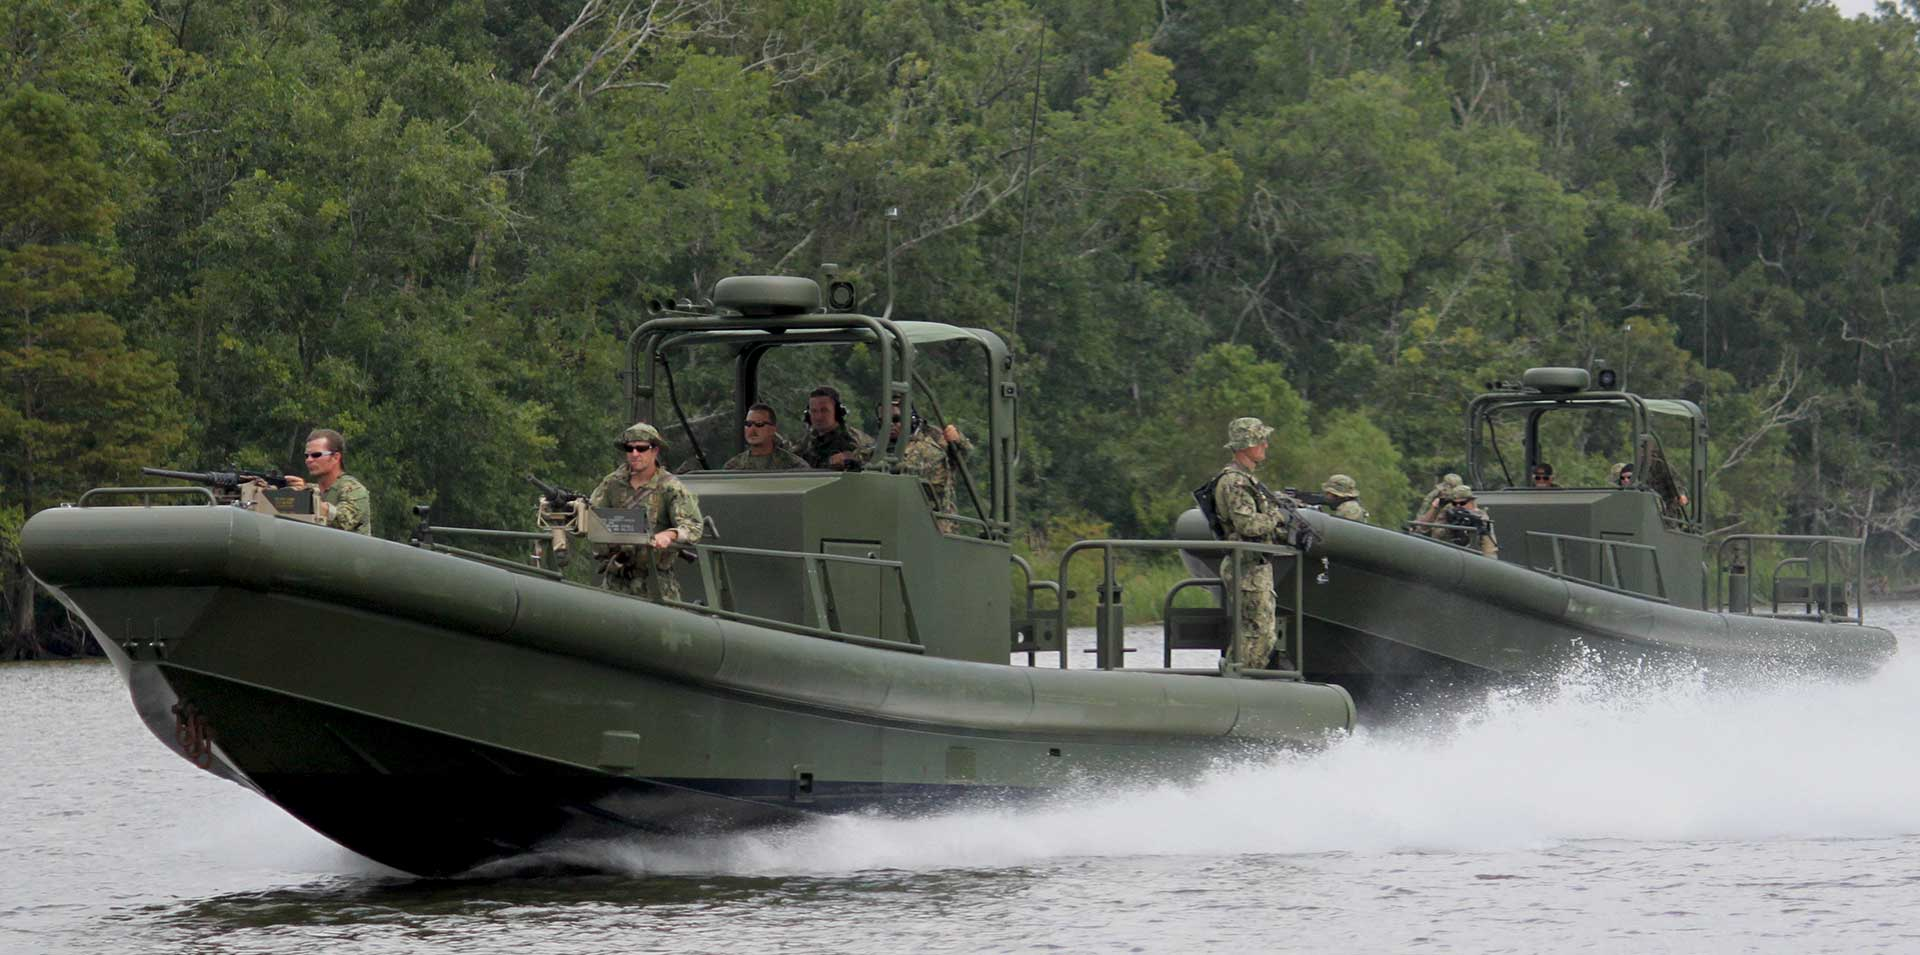 Silver Ships riverine patrol boats with soldiers in the jungle